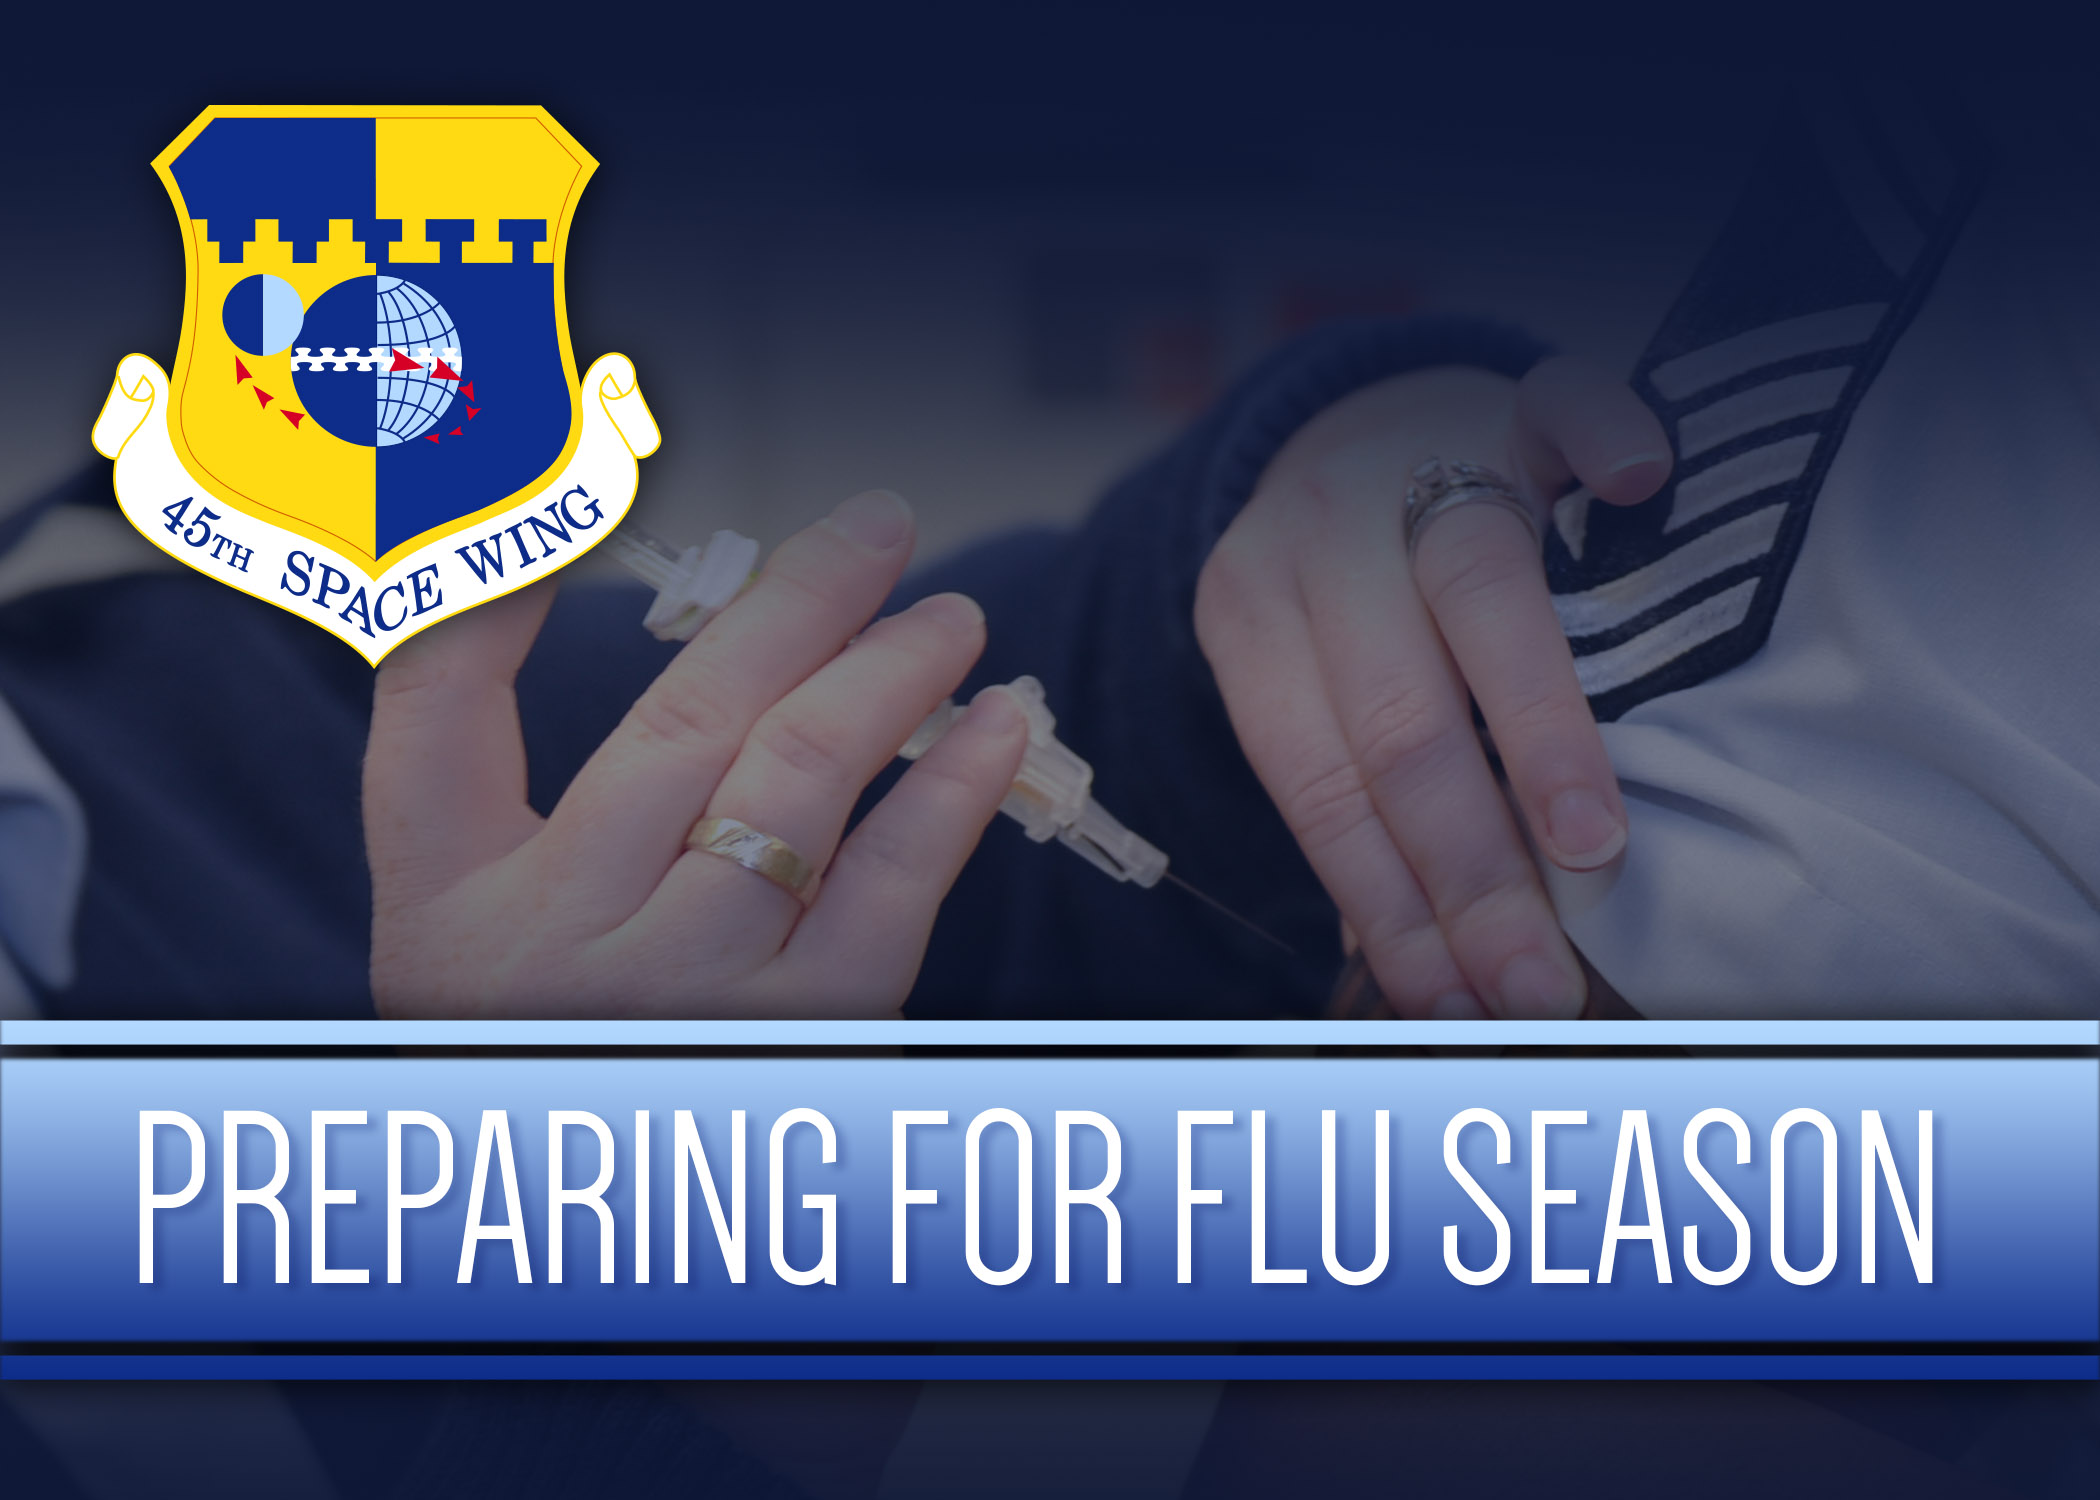 Flu Vaccine Available At Clinic Gt 45th Space Wing